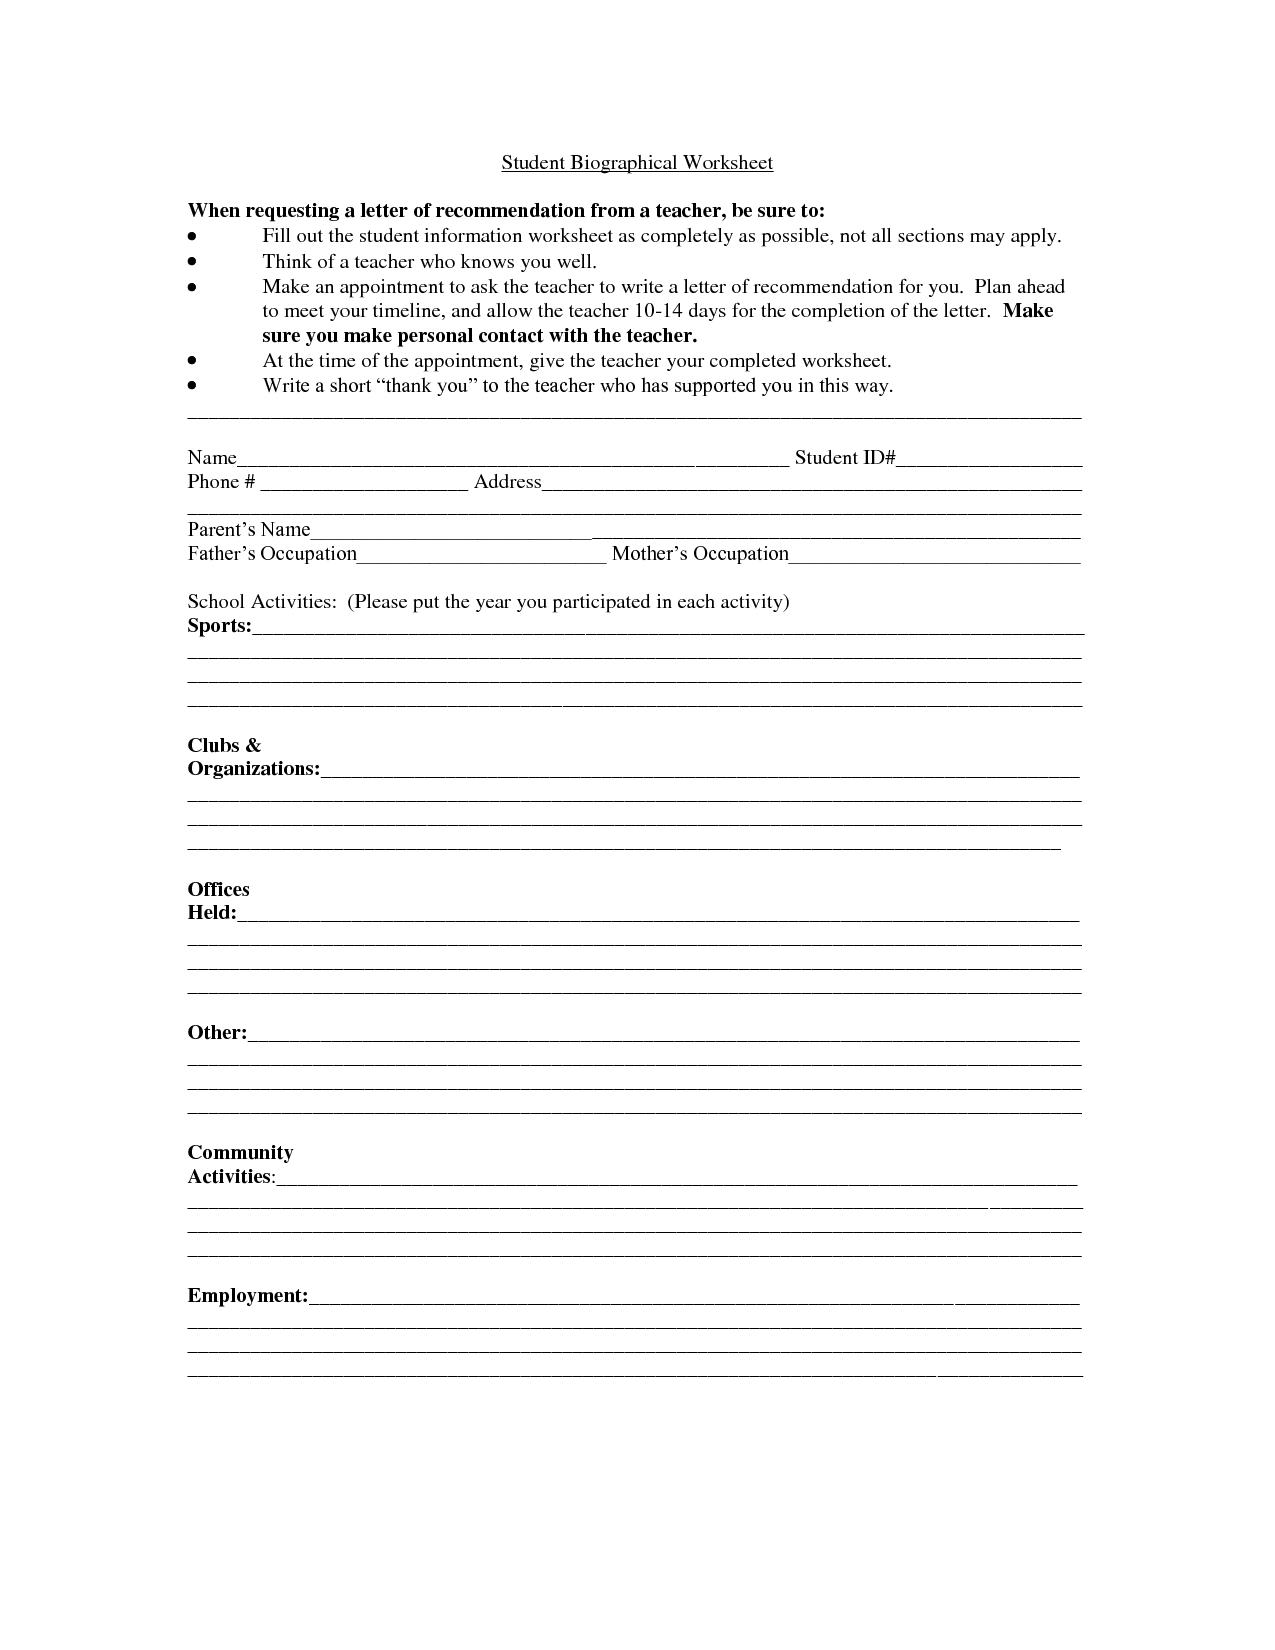 14 Best Images Of Student Information Worksheet